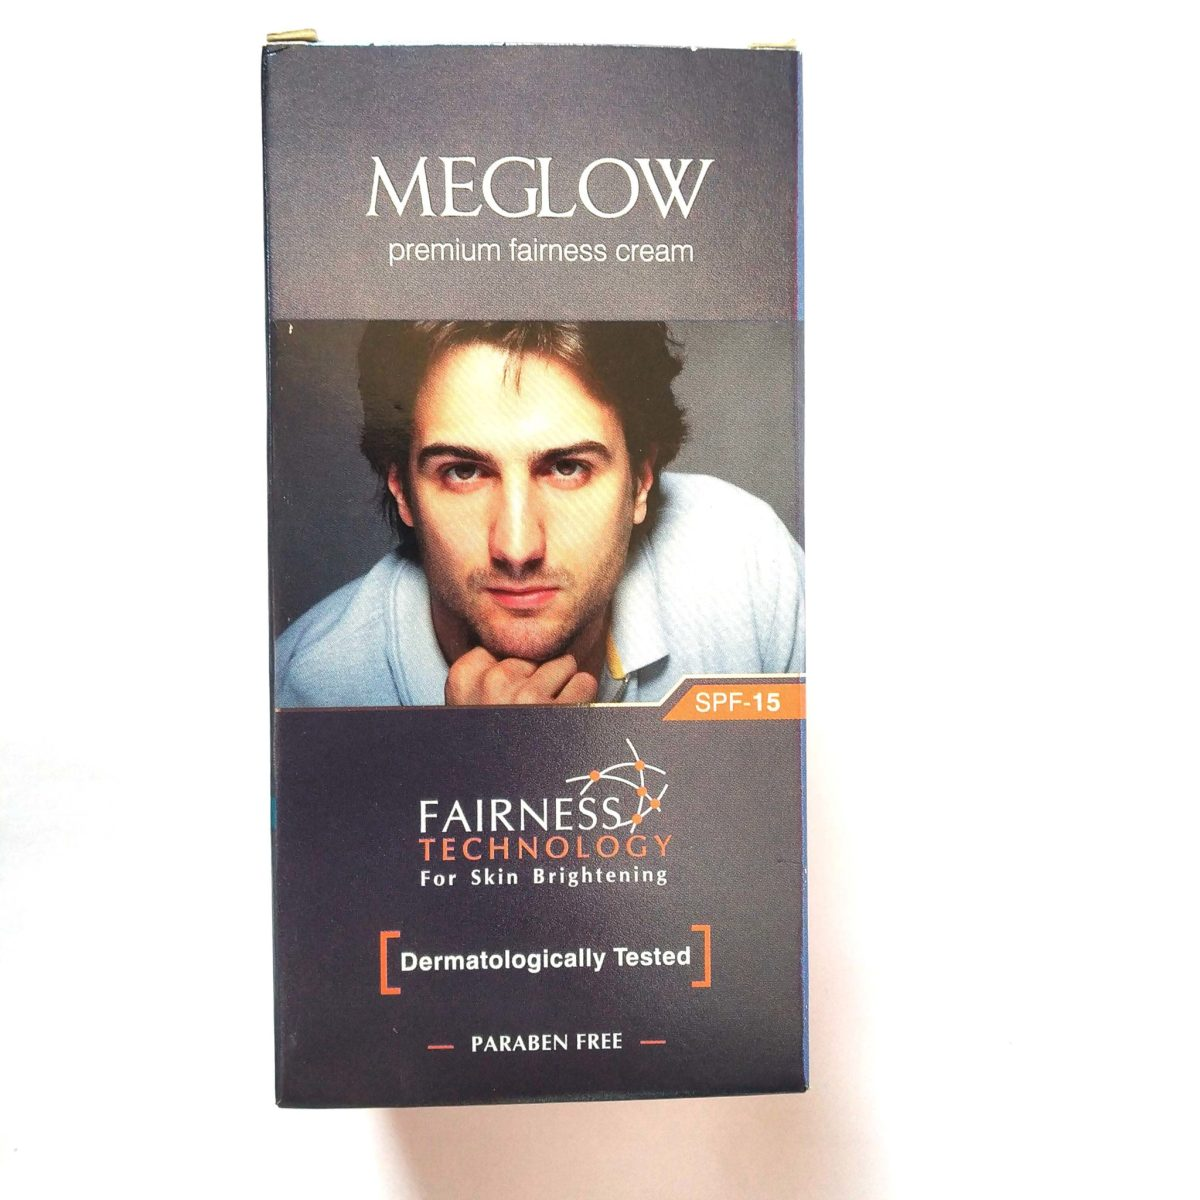 Meglow Premium Fairness Cream for Men- 50g